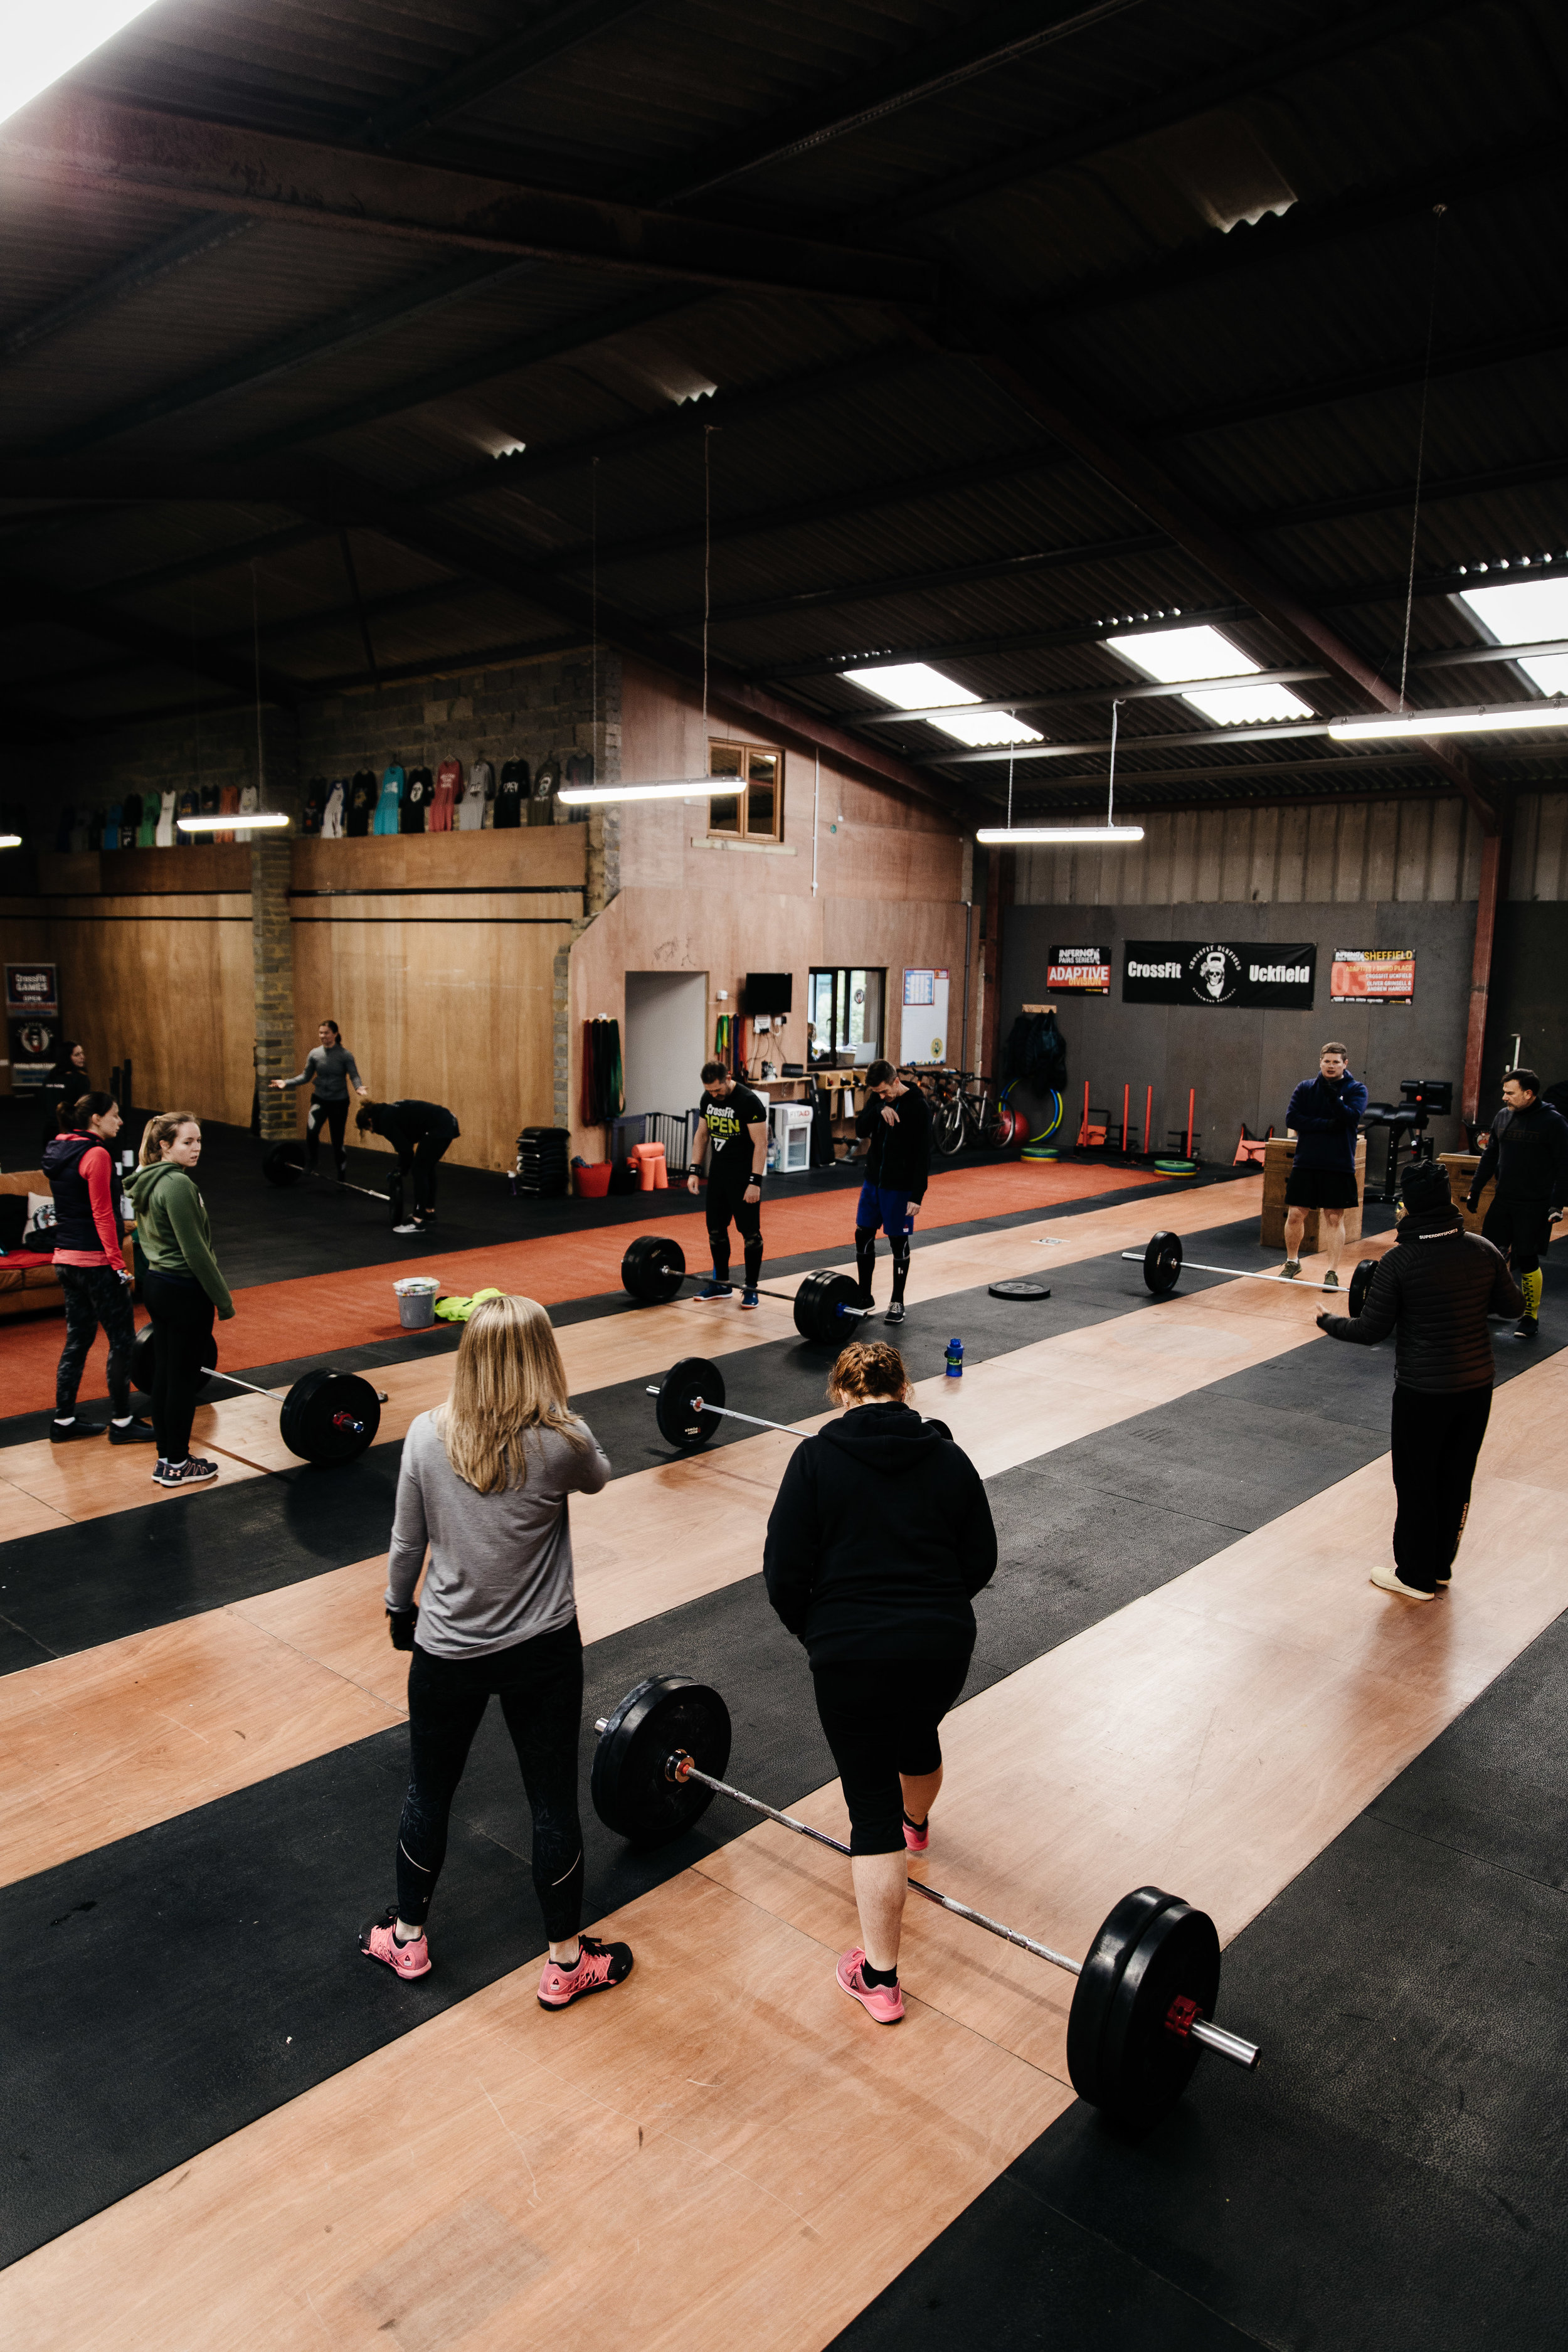 If you're not getting the results you want or believe you should be getting from your training, take a look at this list of potential pitfalls - and make 2019 the year you do CrossFit right!